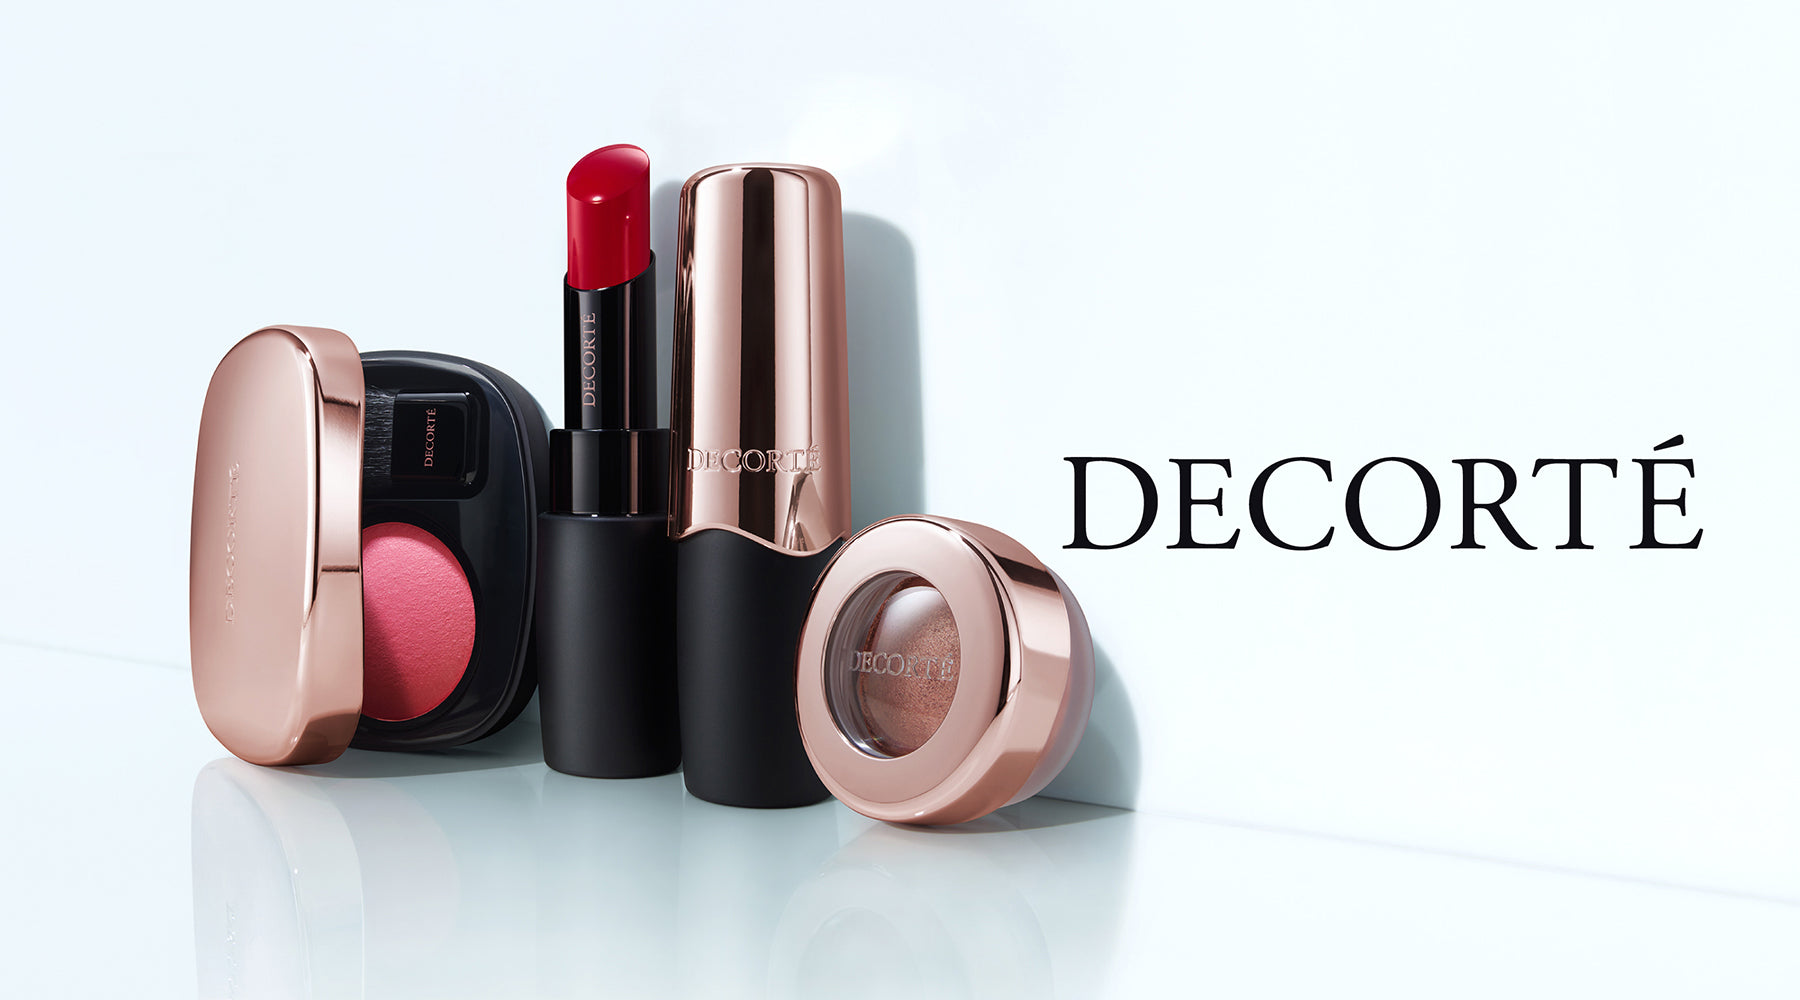 Cosme Decorte Makeup 2018